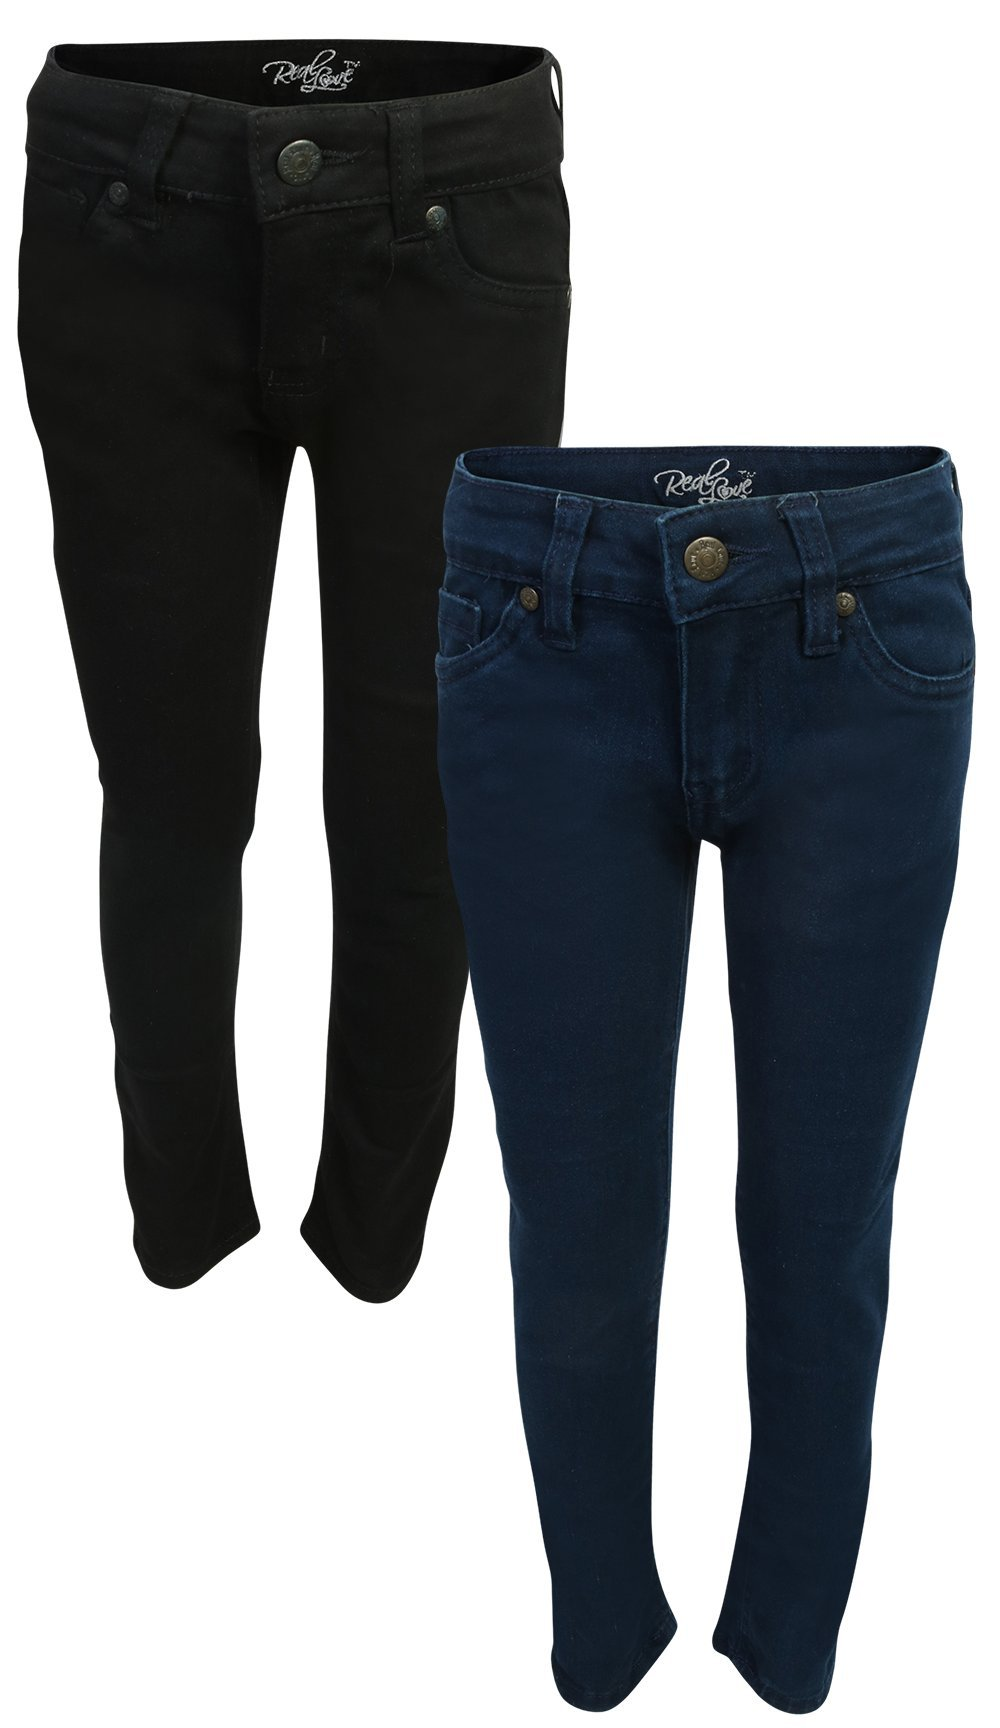 Real Love Girls Skinny Jeans, Black & Blue (2 Pack) Size 6 by Real Love (Image #1)